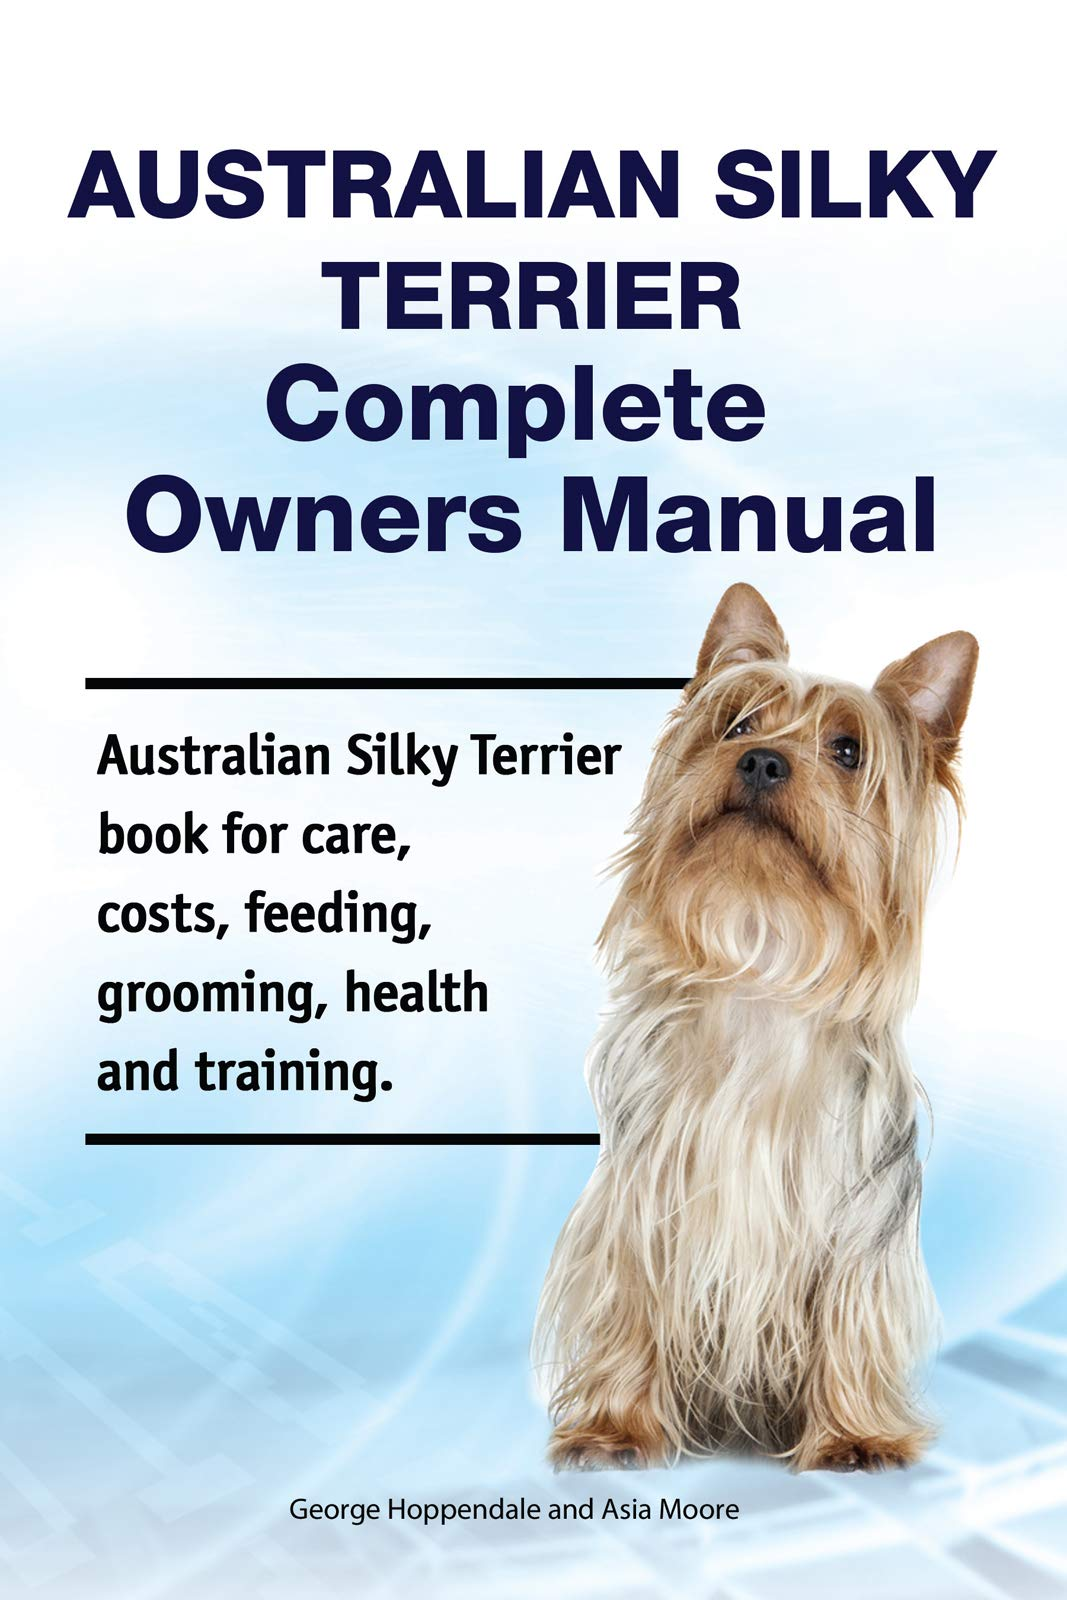 Australian Silky Terrier Complete Owners Manual. Australian Silky Terrier book for care, costs, feeding, grooming, health and training.